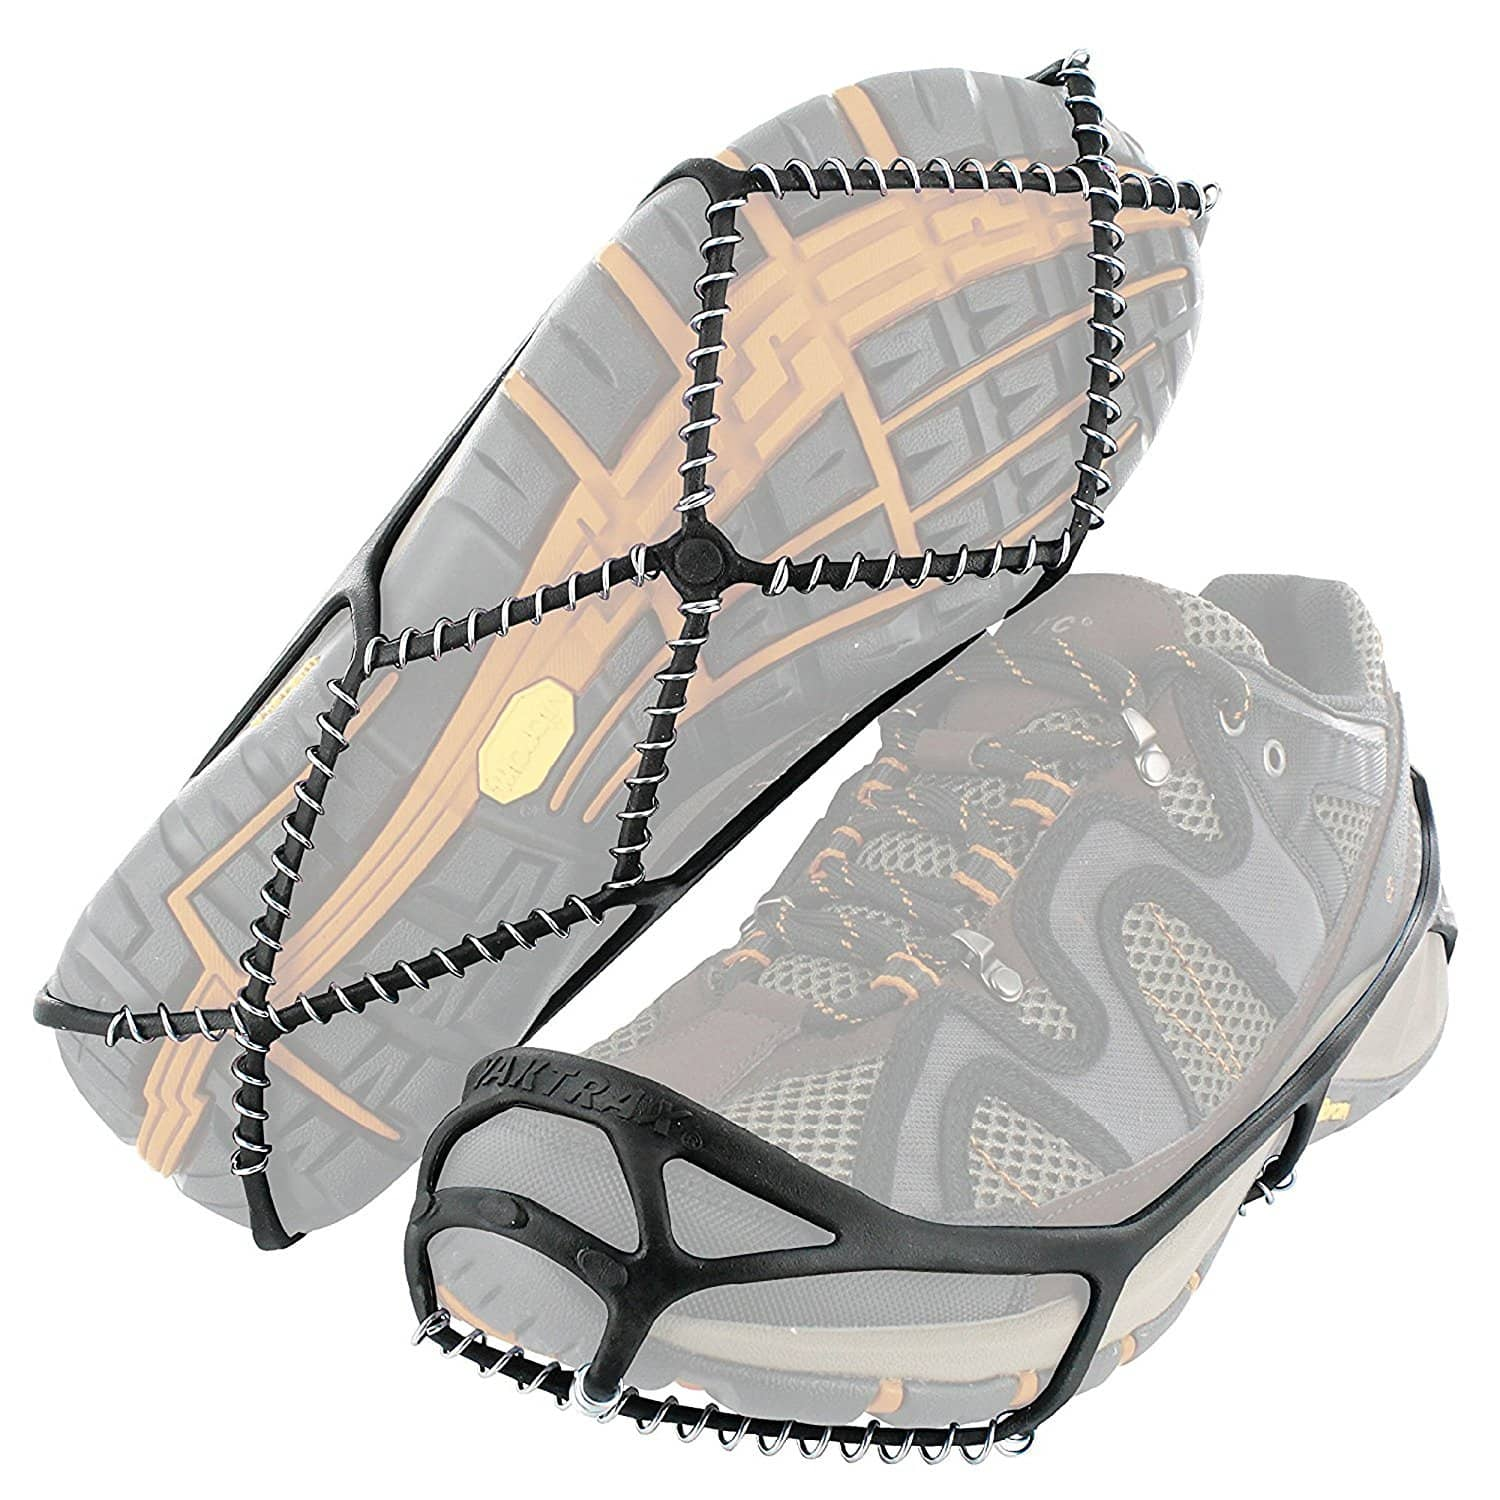 Yaktrax Walk Traction Cleats for Walking on Snow and Ice $12.77 @Amazon